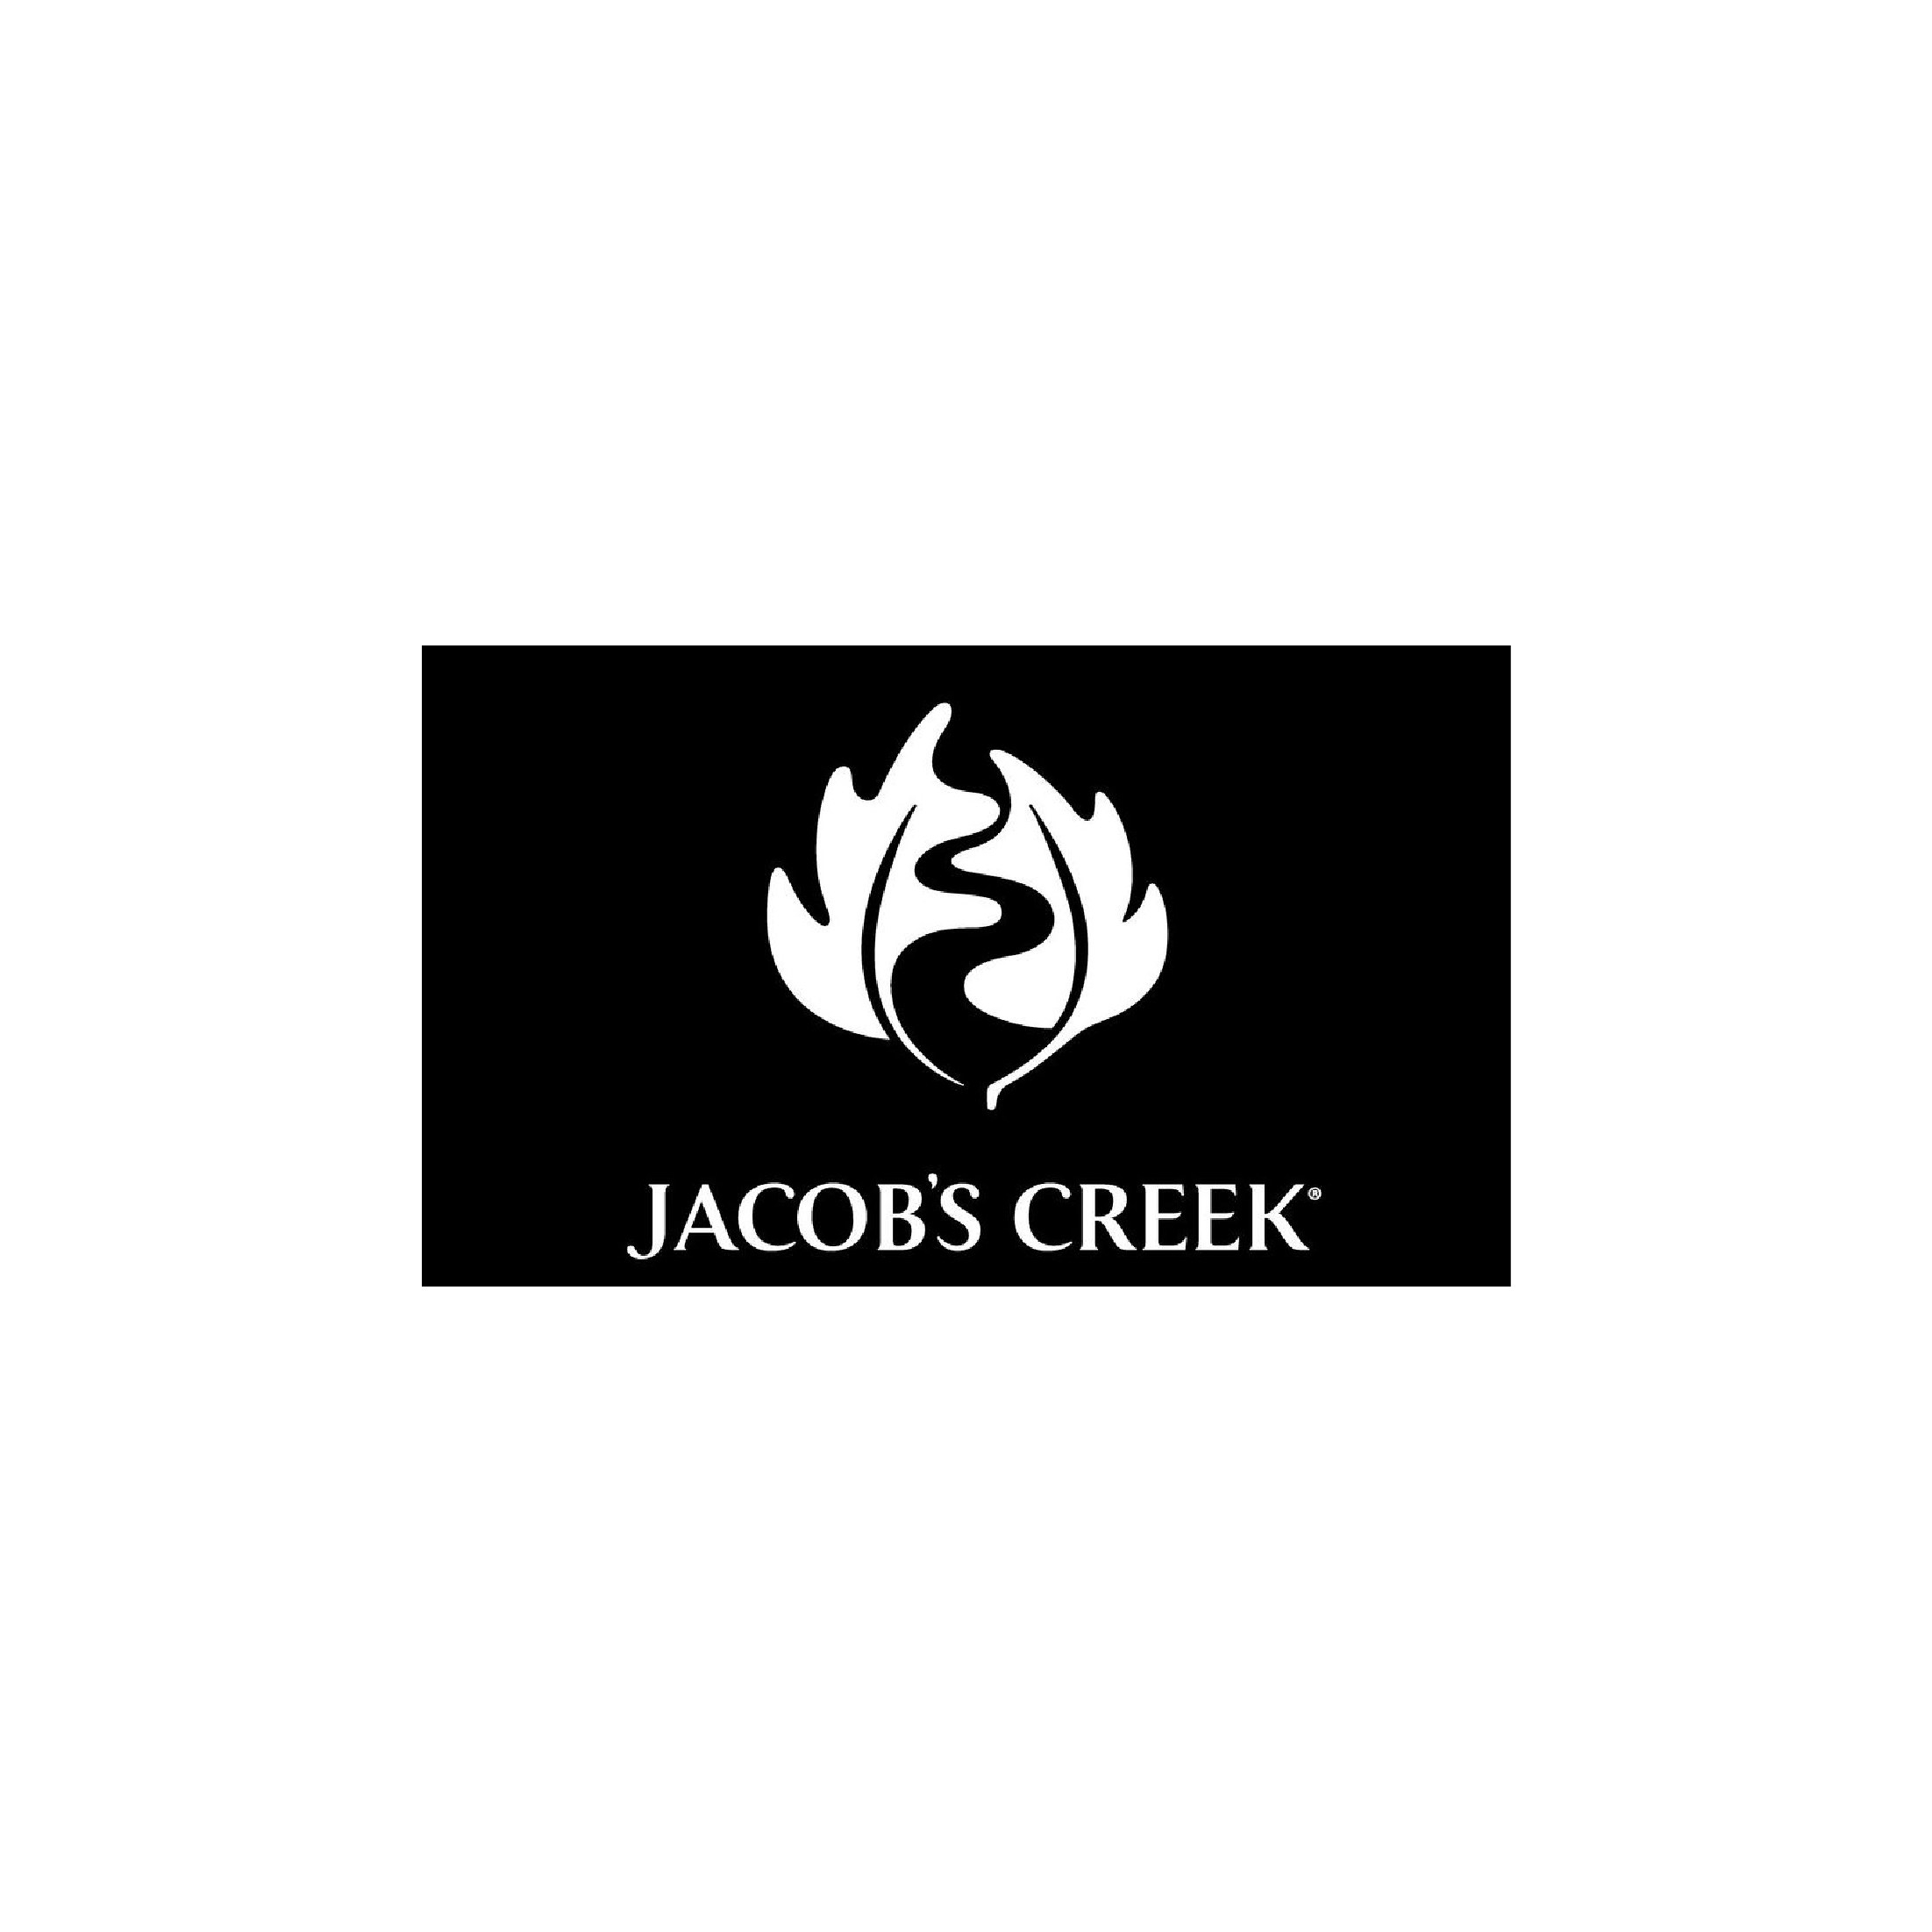 sponsors_Jacobs Creek.jpg